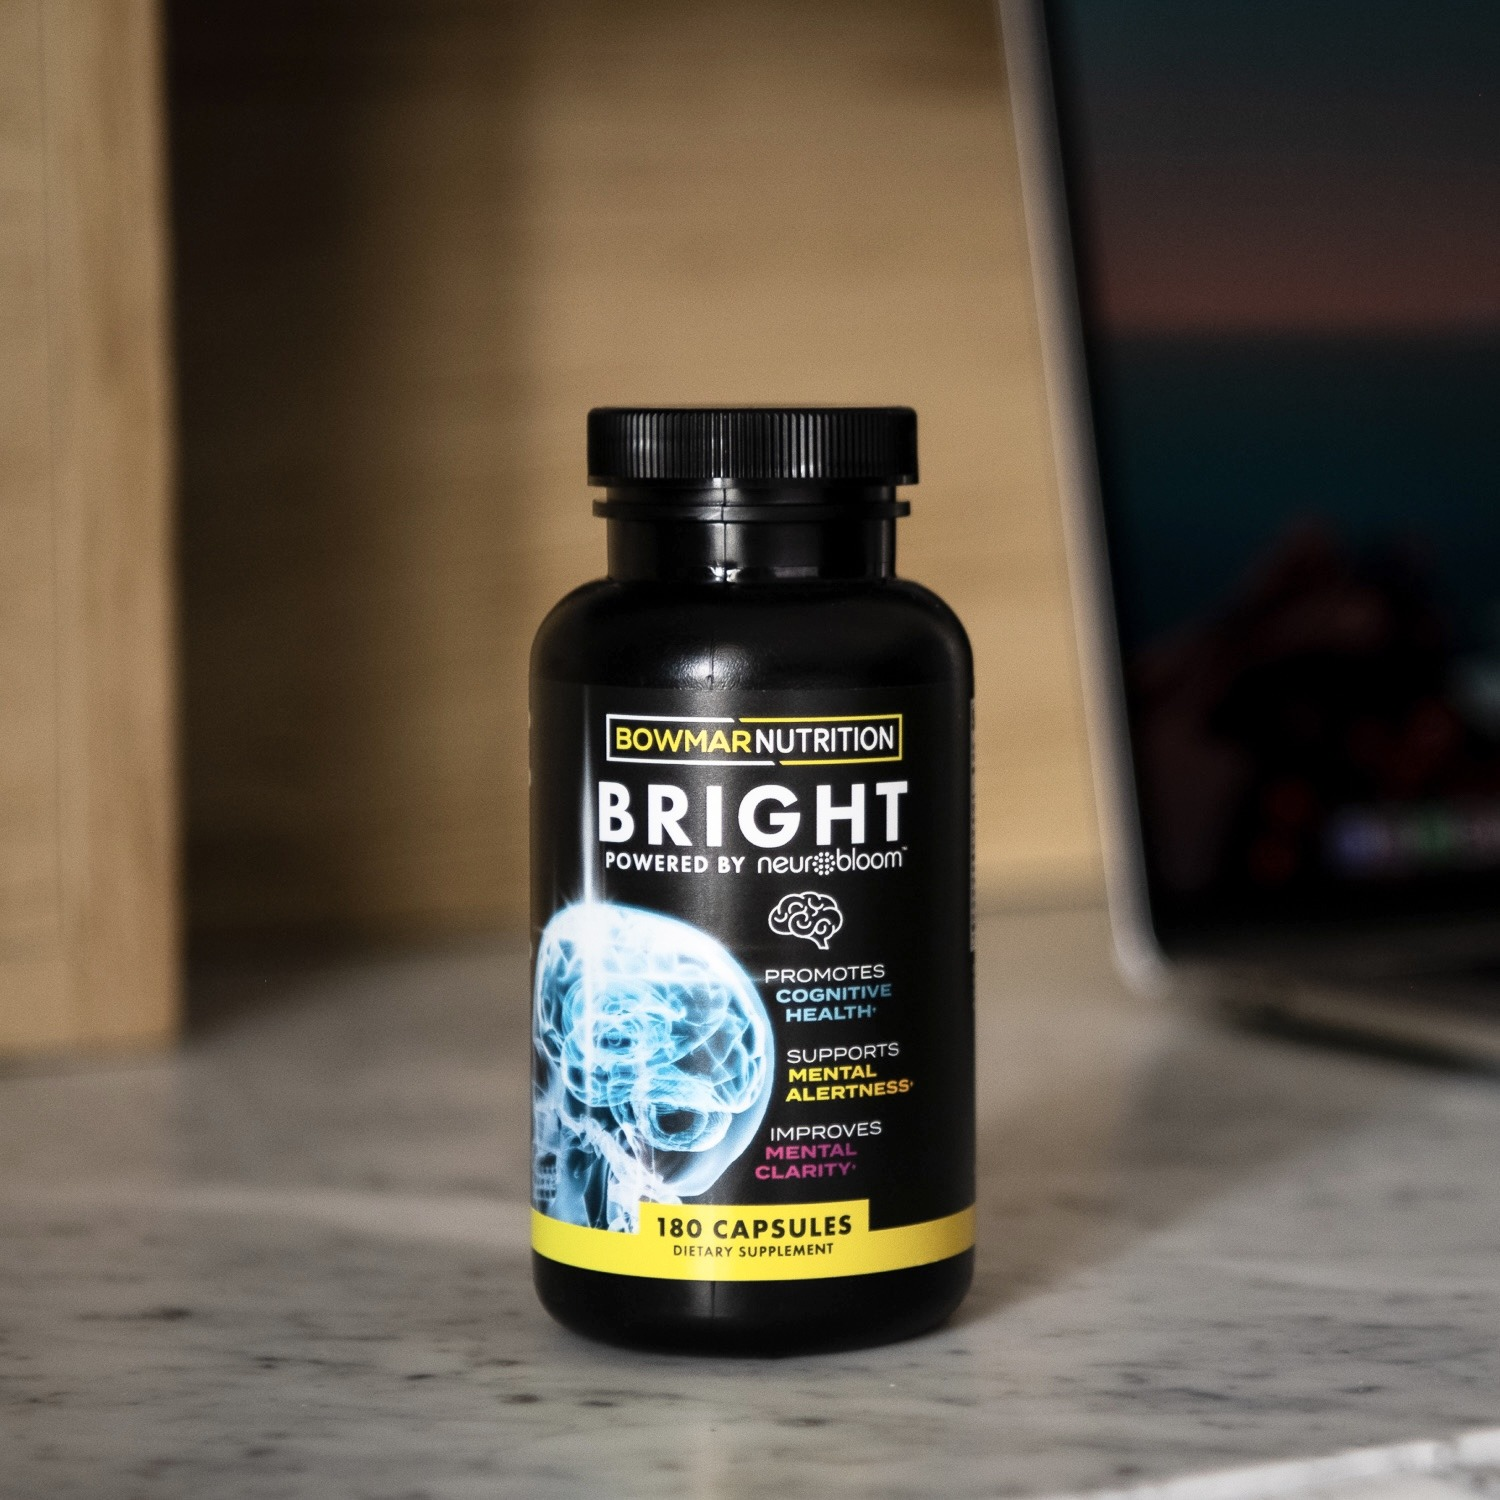 BRIGHT powered by Neurobloom™